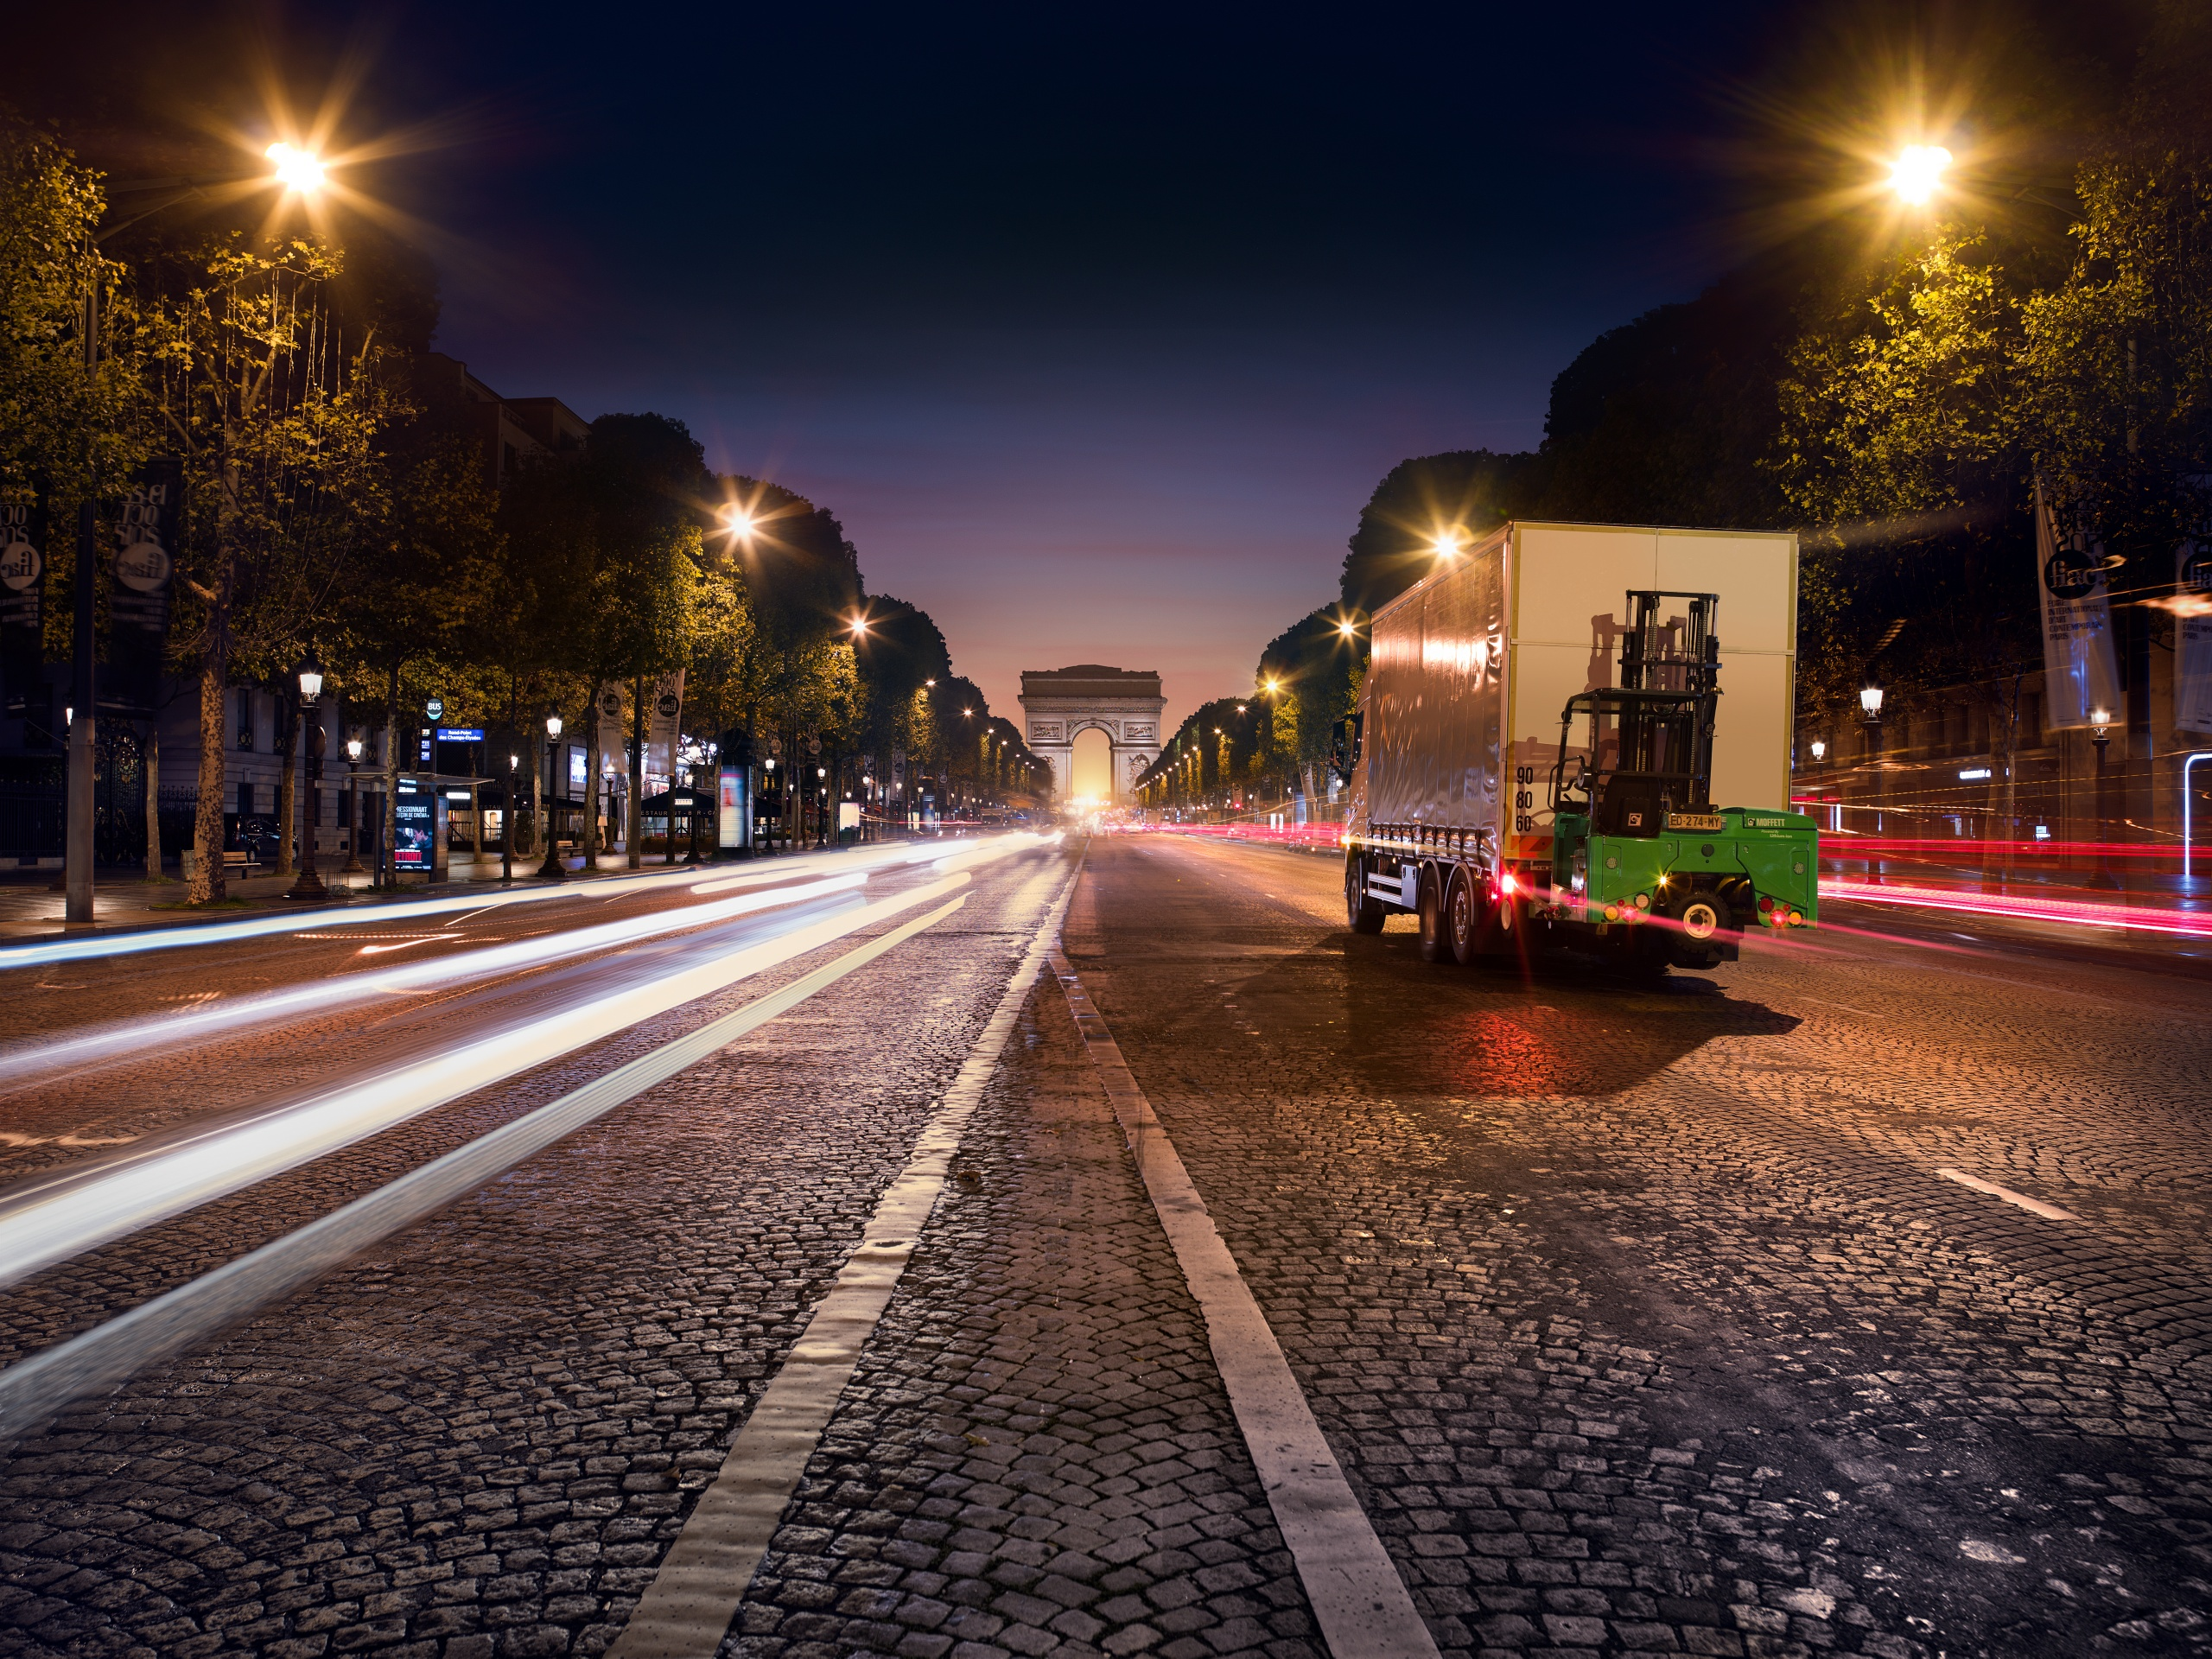 MOFFETT E4 at Champs Elysees in Paris